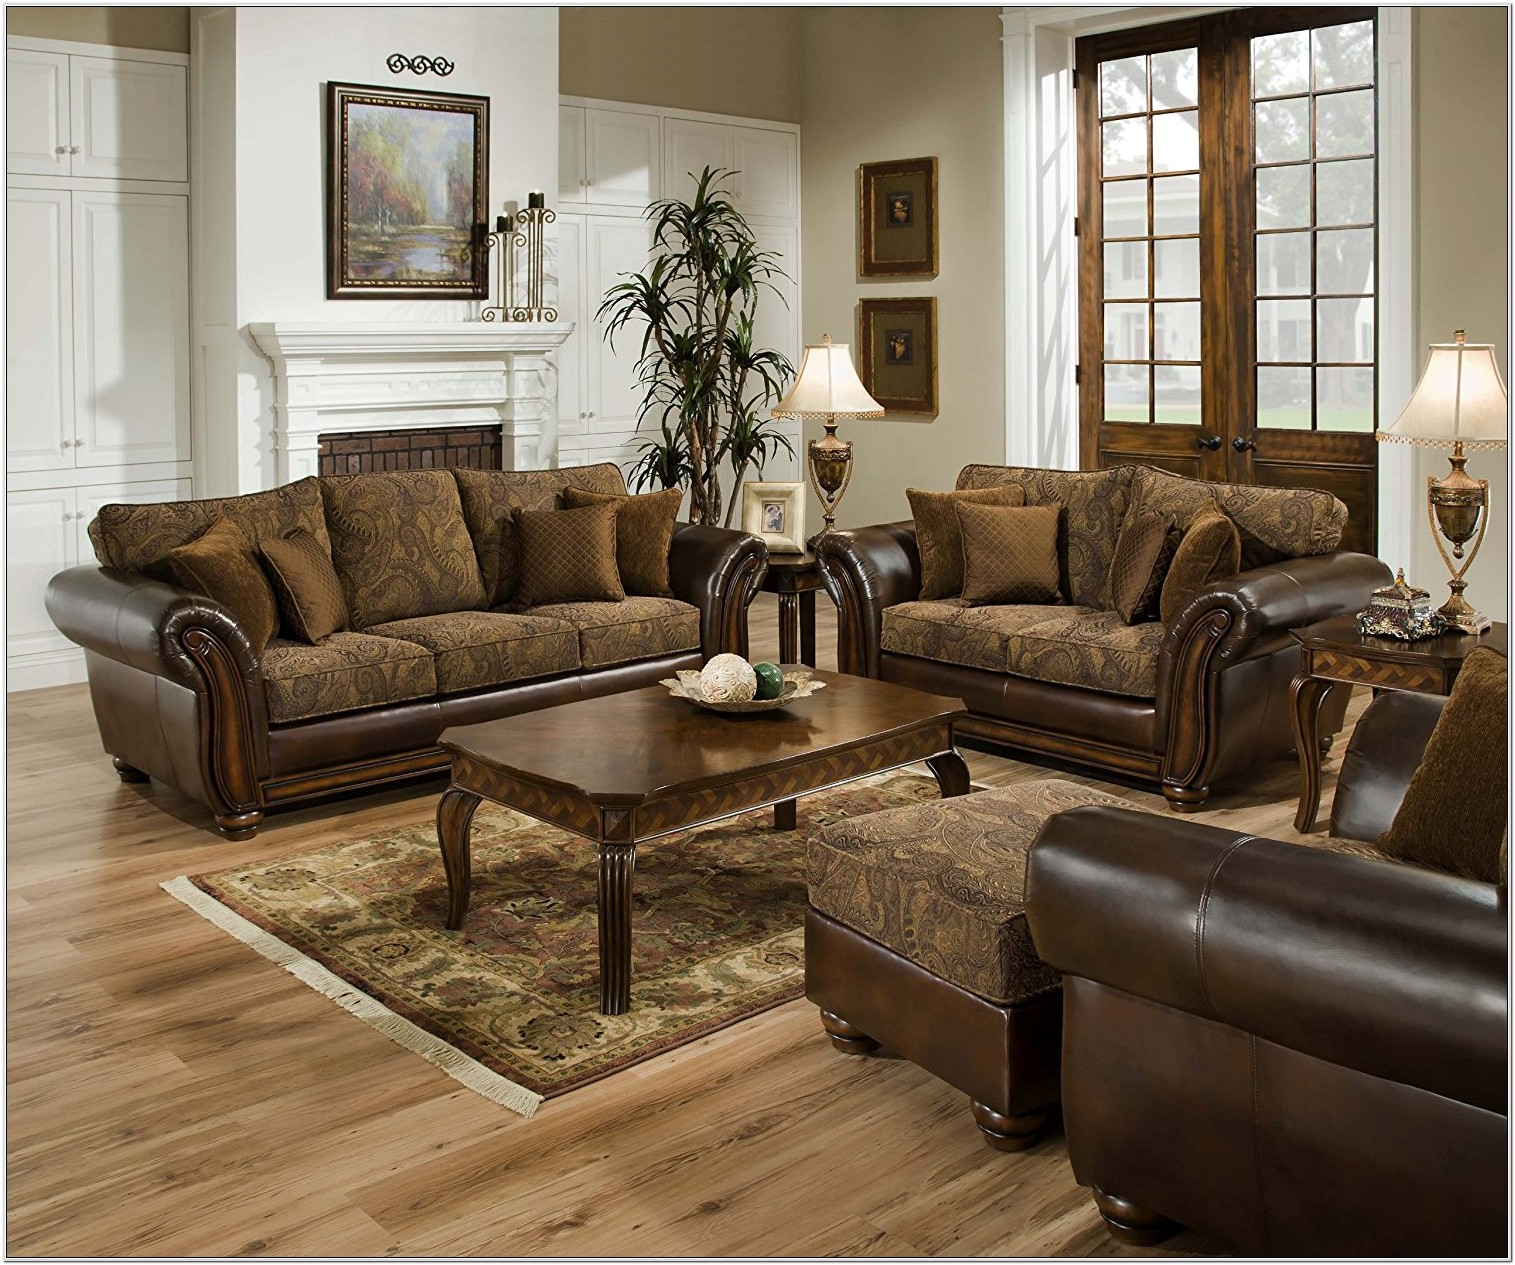 Aspen Group Living Room Set